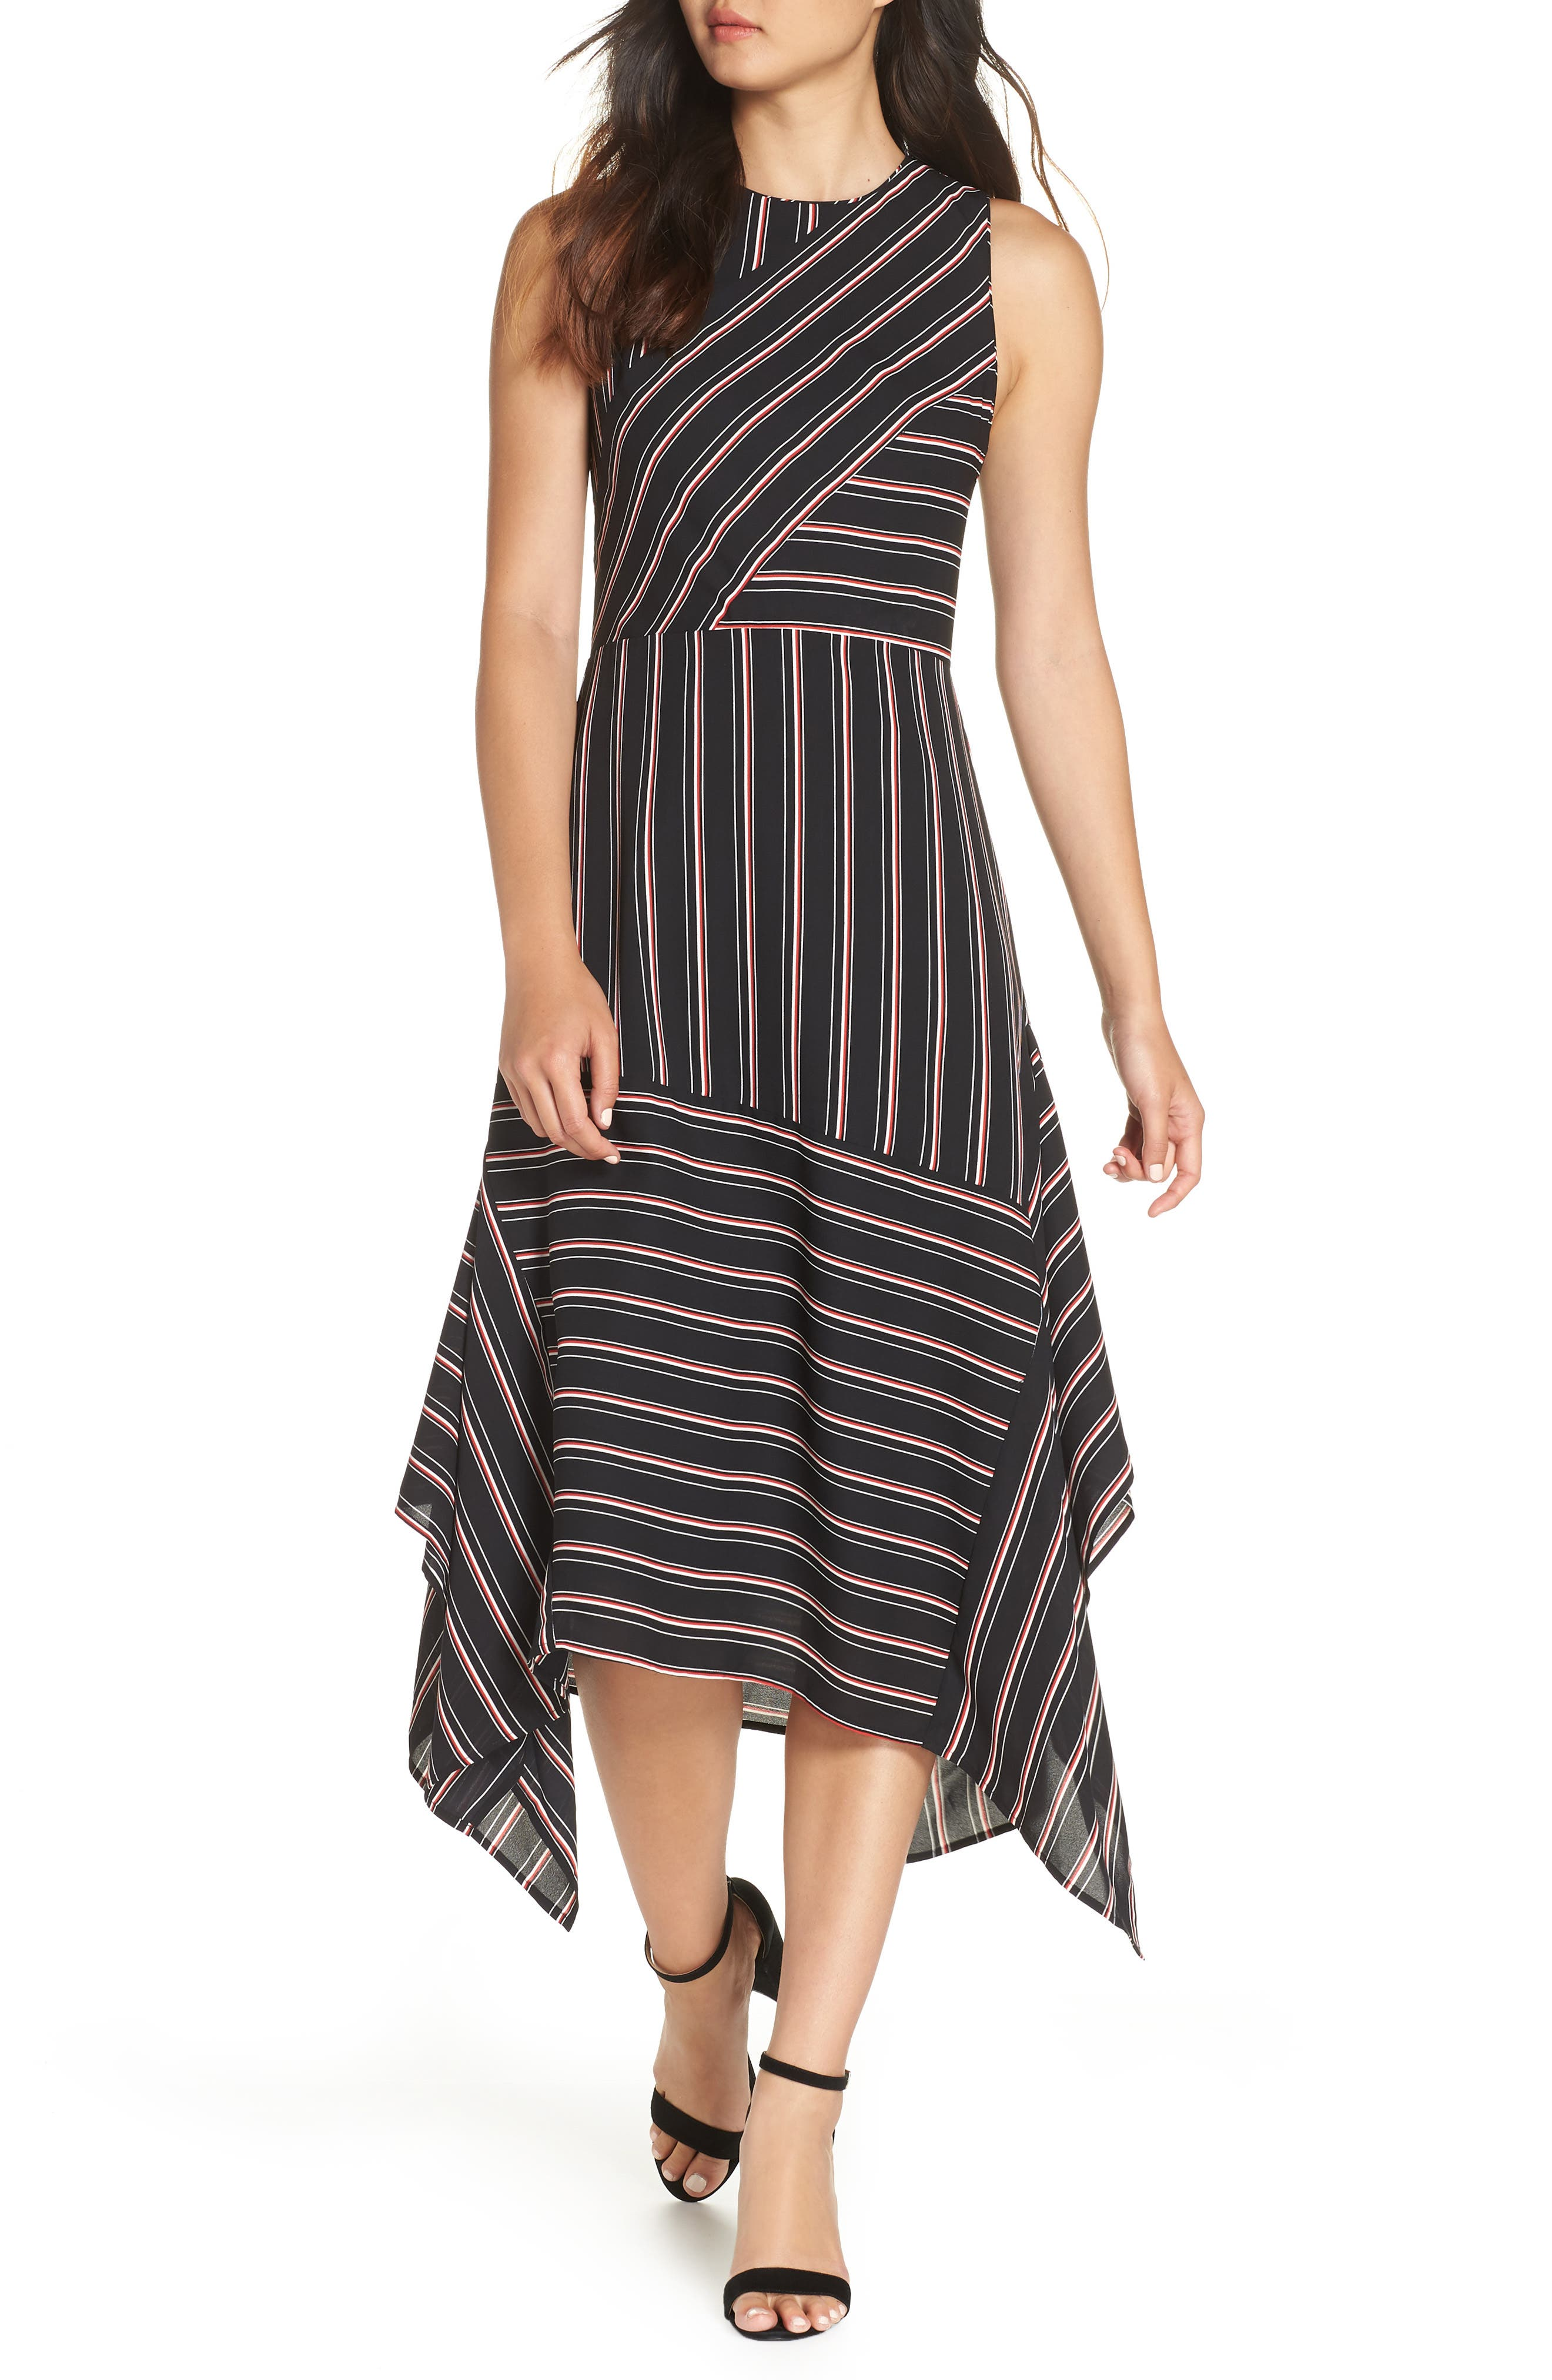 Mix Stripe Midi Dress,                             Main thumbnail 1, color,                             BLACK STRIPE MIX COMBO